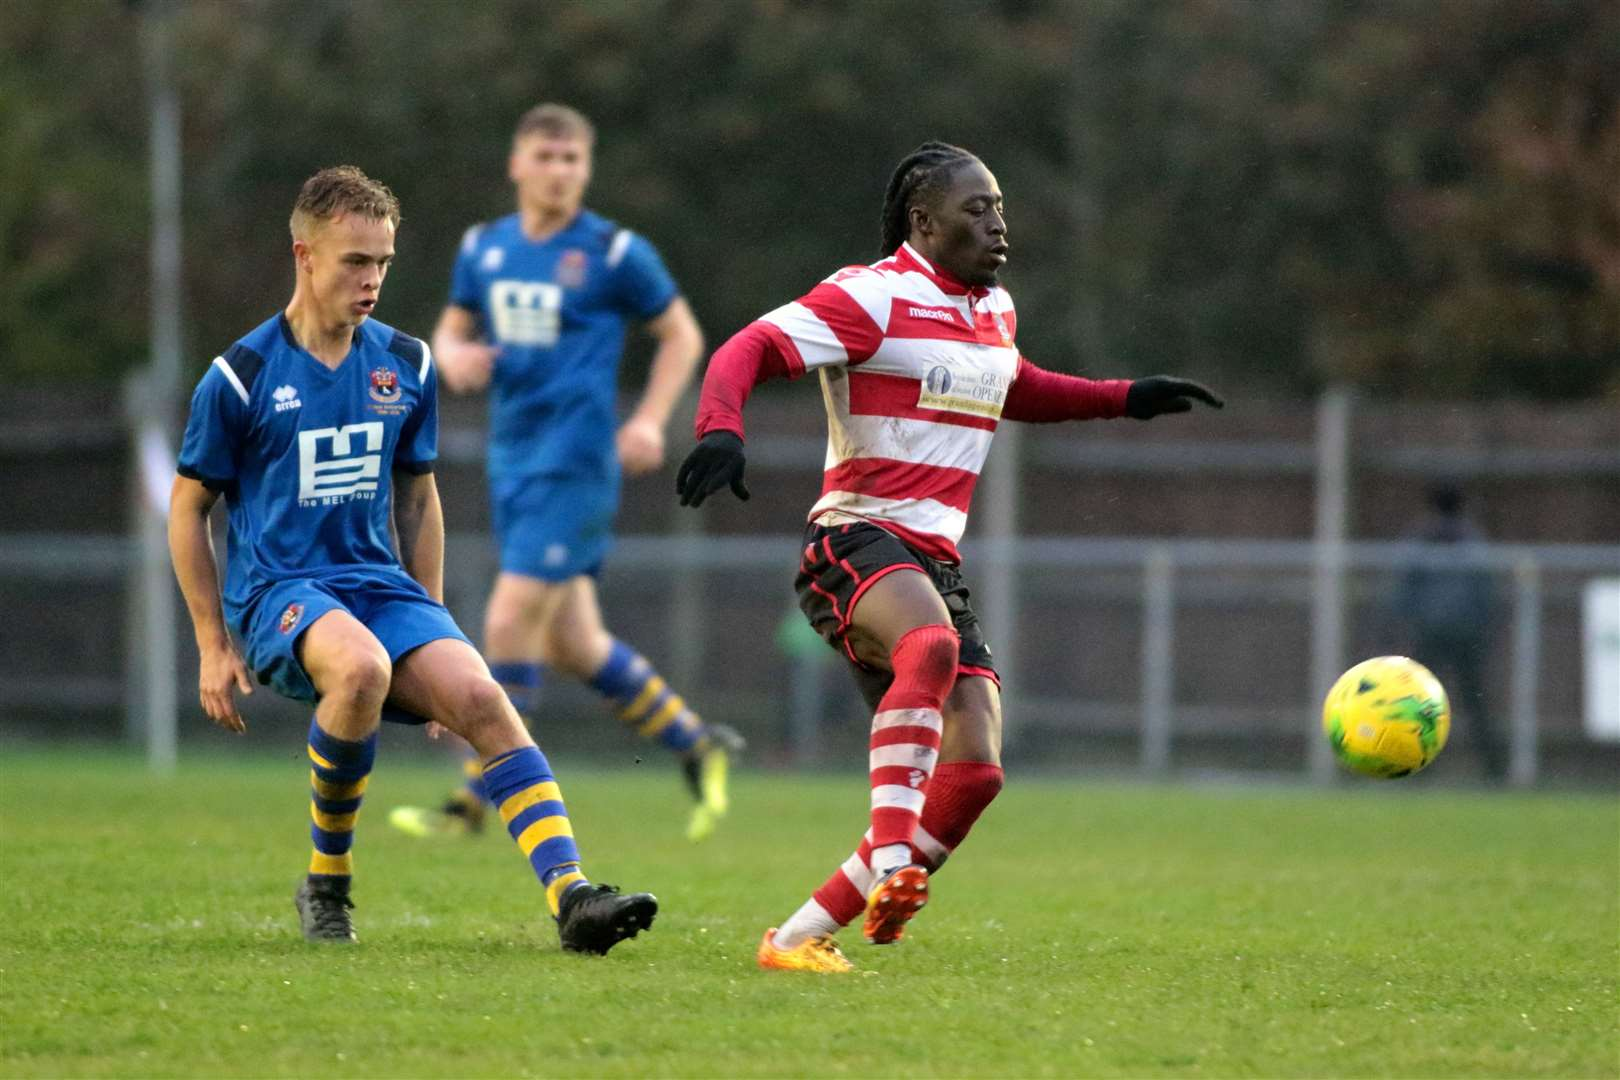 AFC Sudbury v Kingstonian - Lewis O'MalleyPicture: Clive Pearson (22680548)